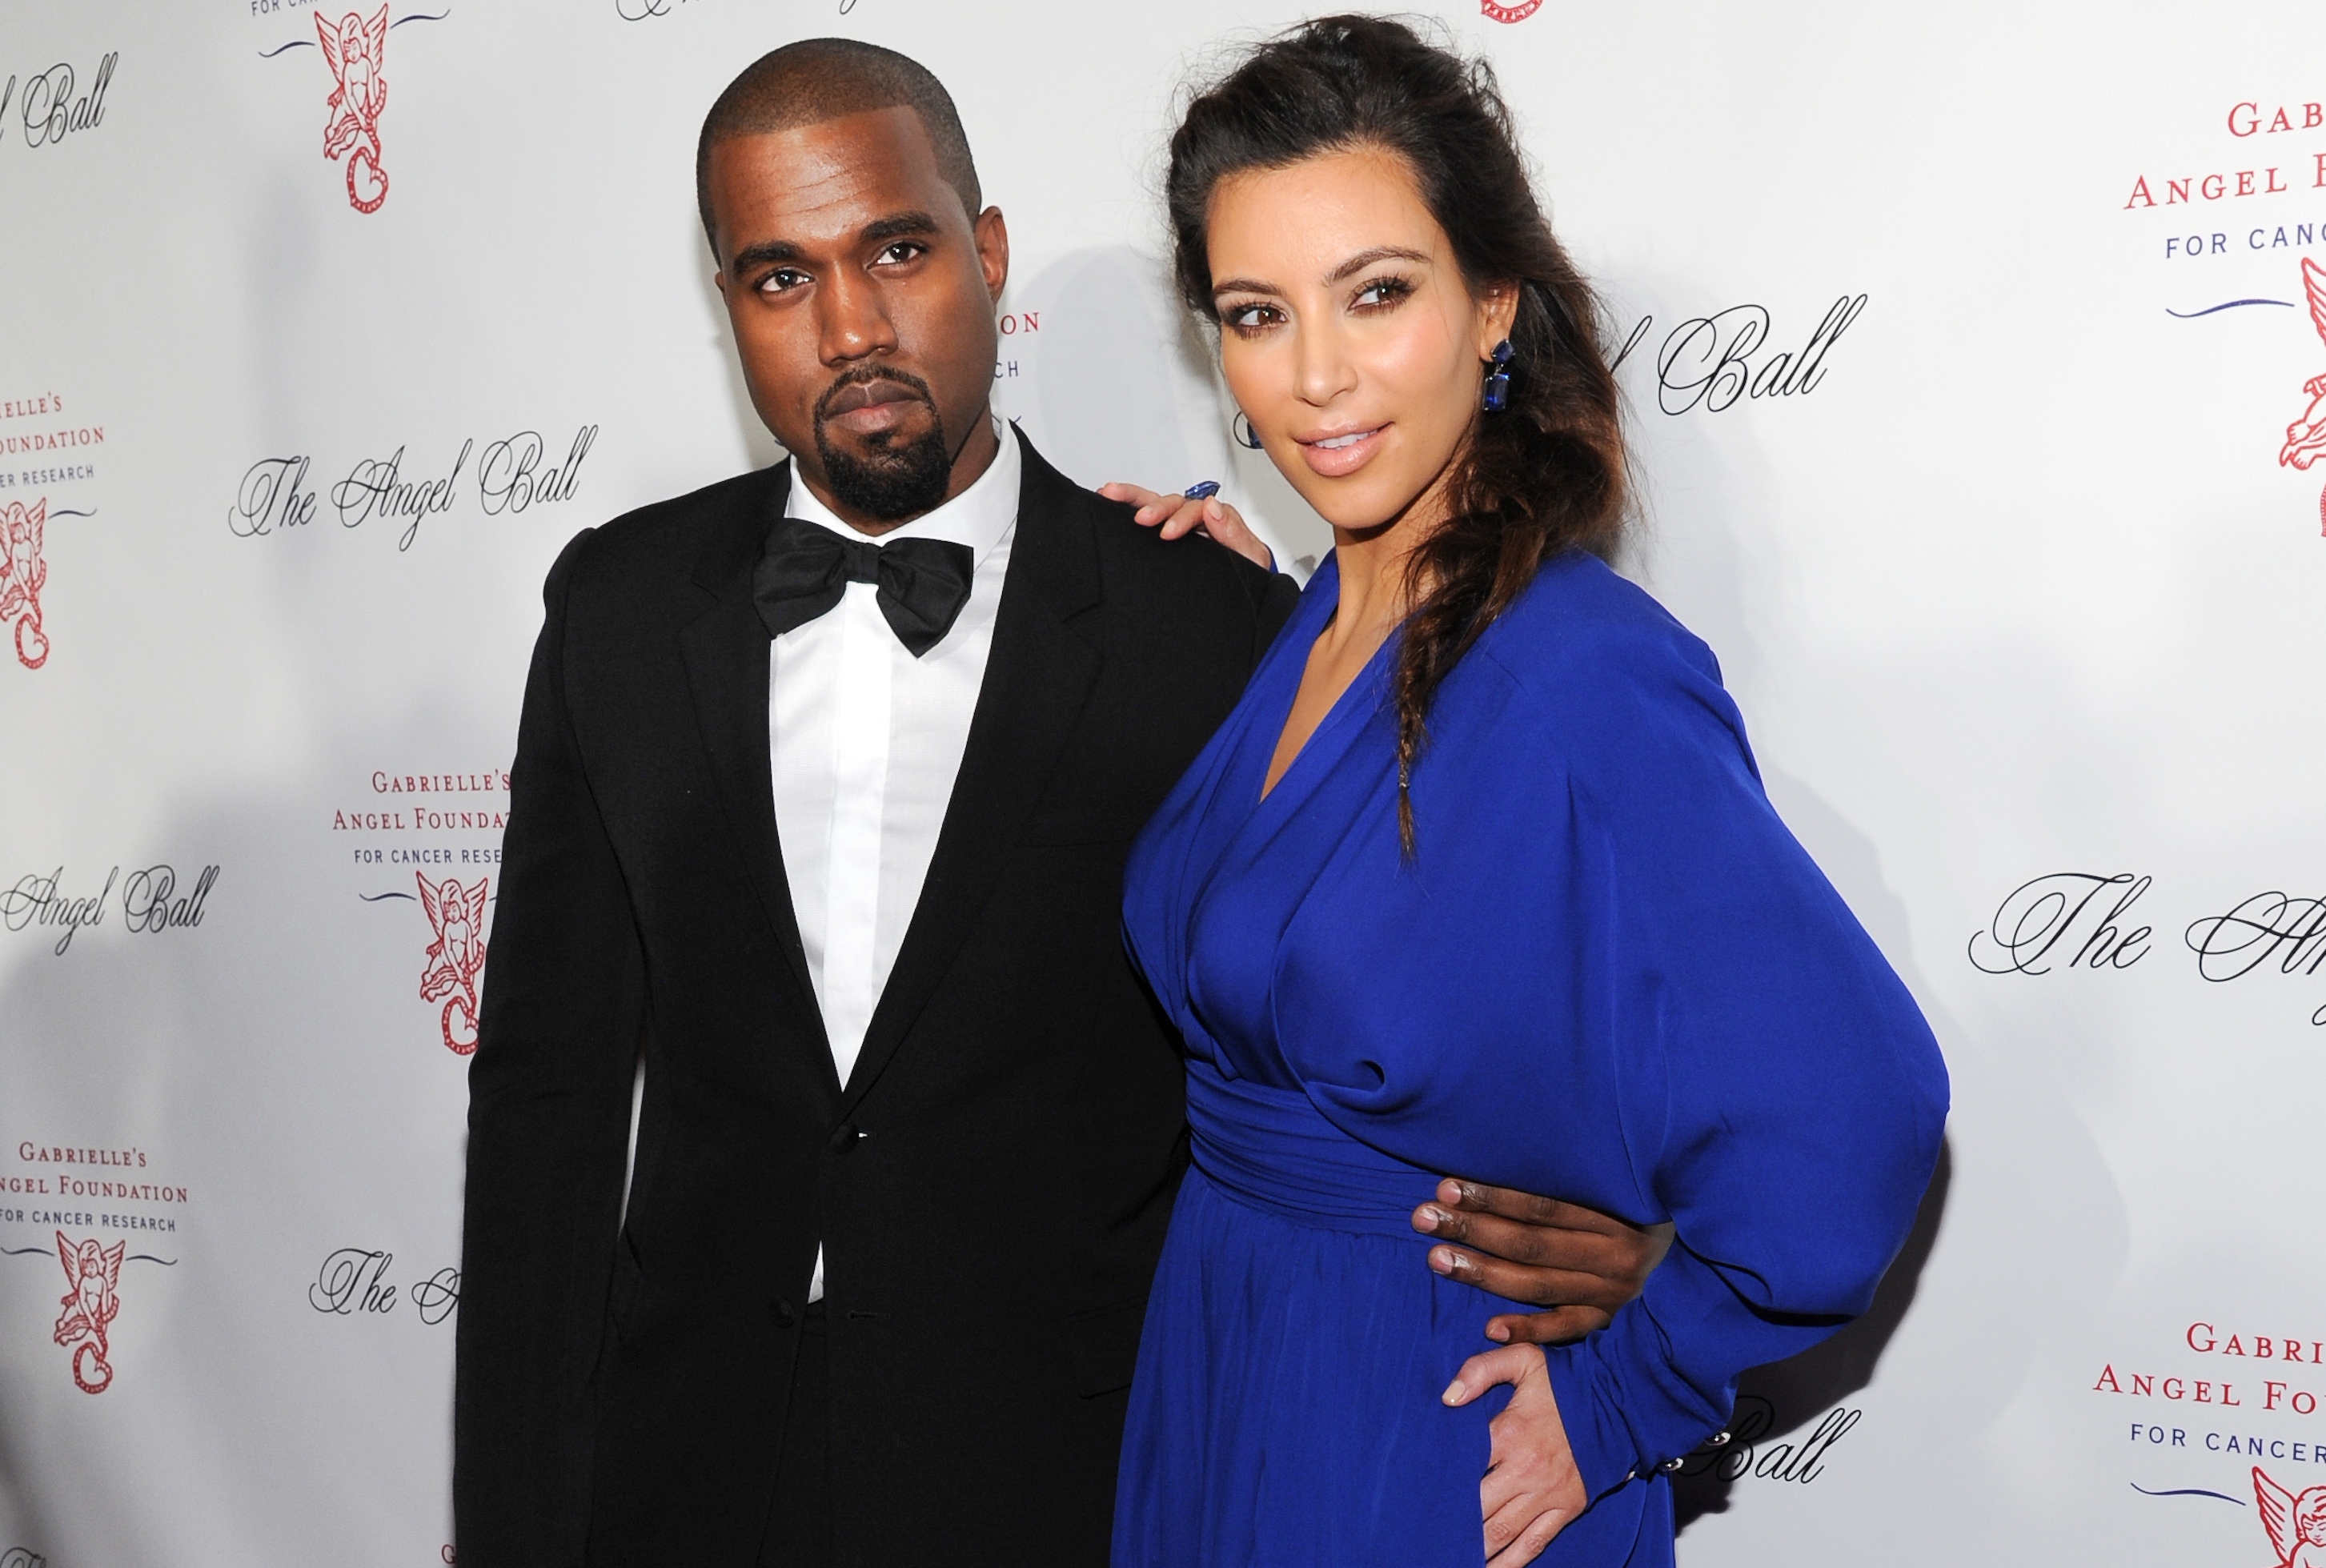 Singer Kanye West and girlfriend Kim Kardashian, shown at a 2012 event, will be tying the knot. West proposed Monday at AT&T Park in San Francisco.